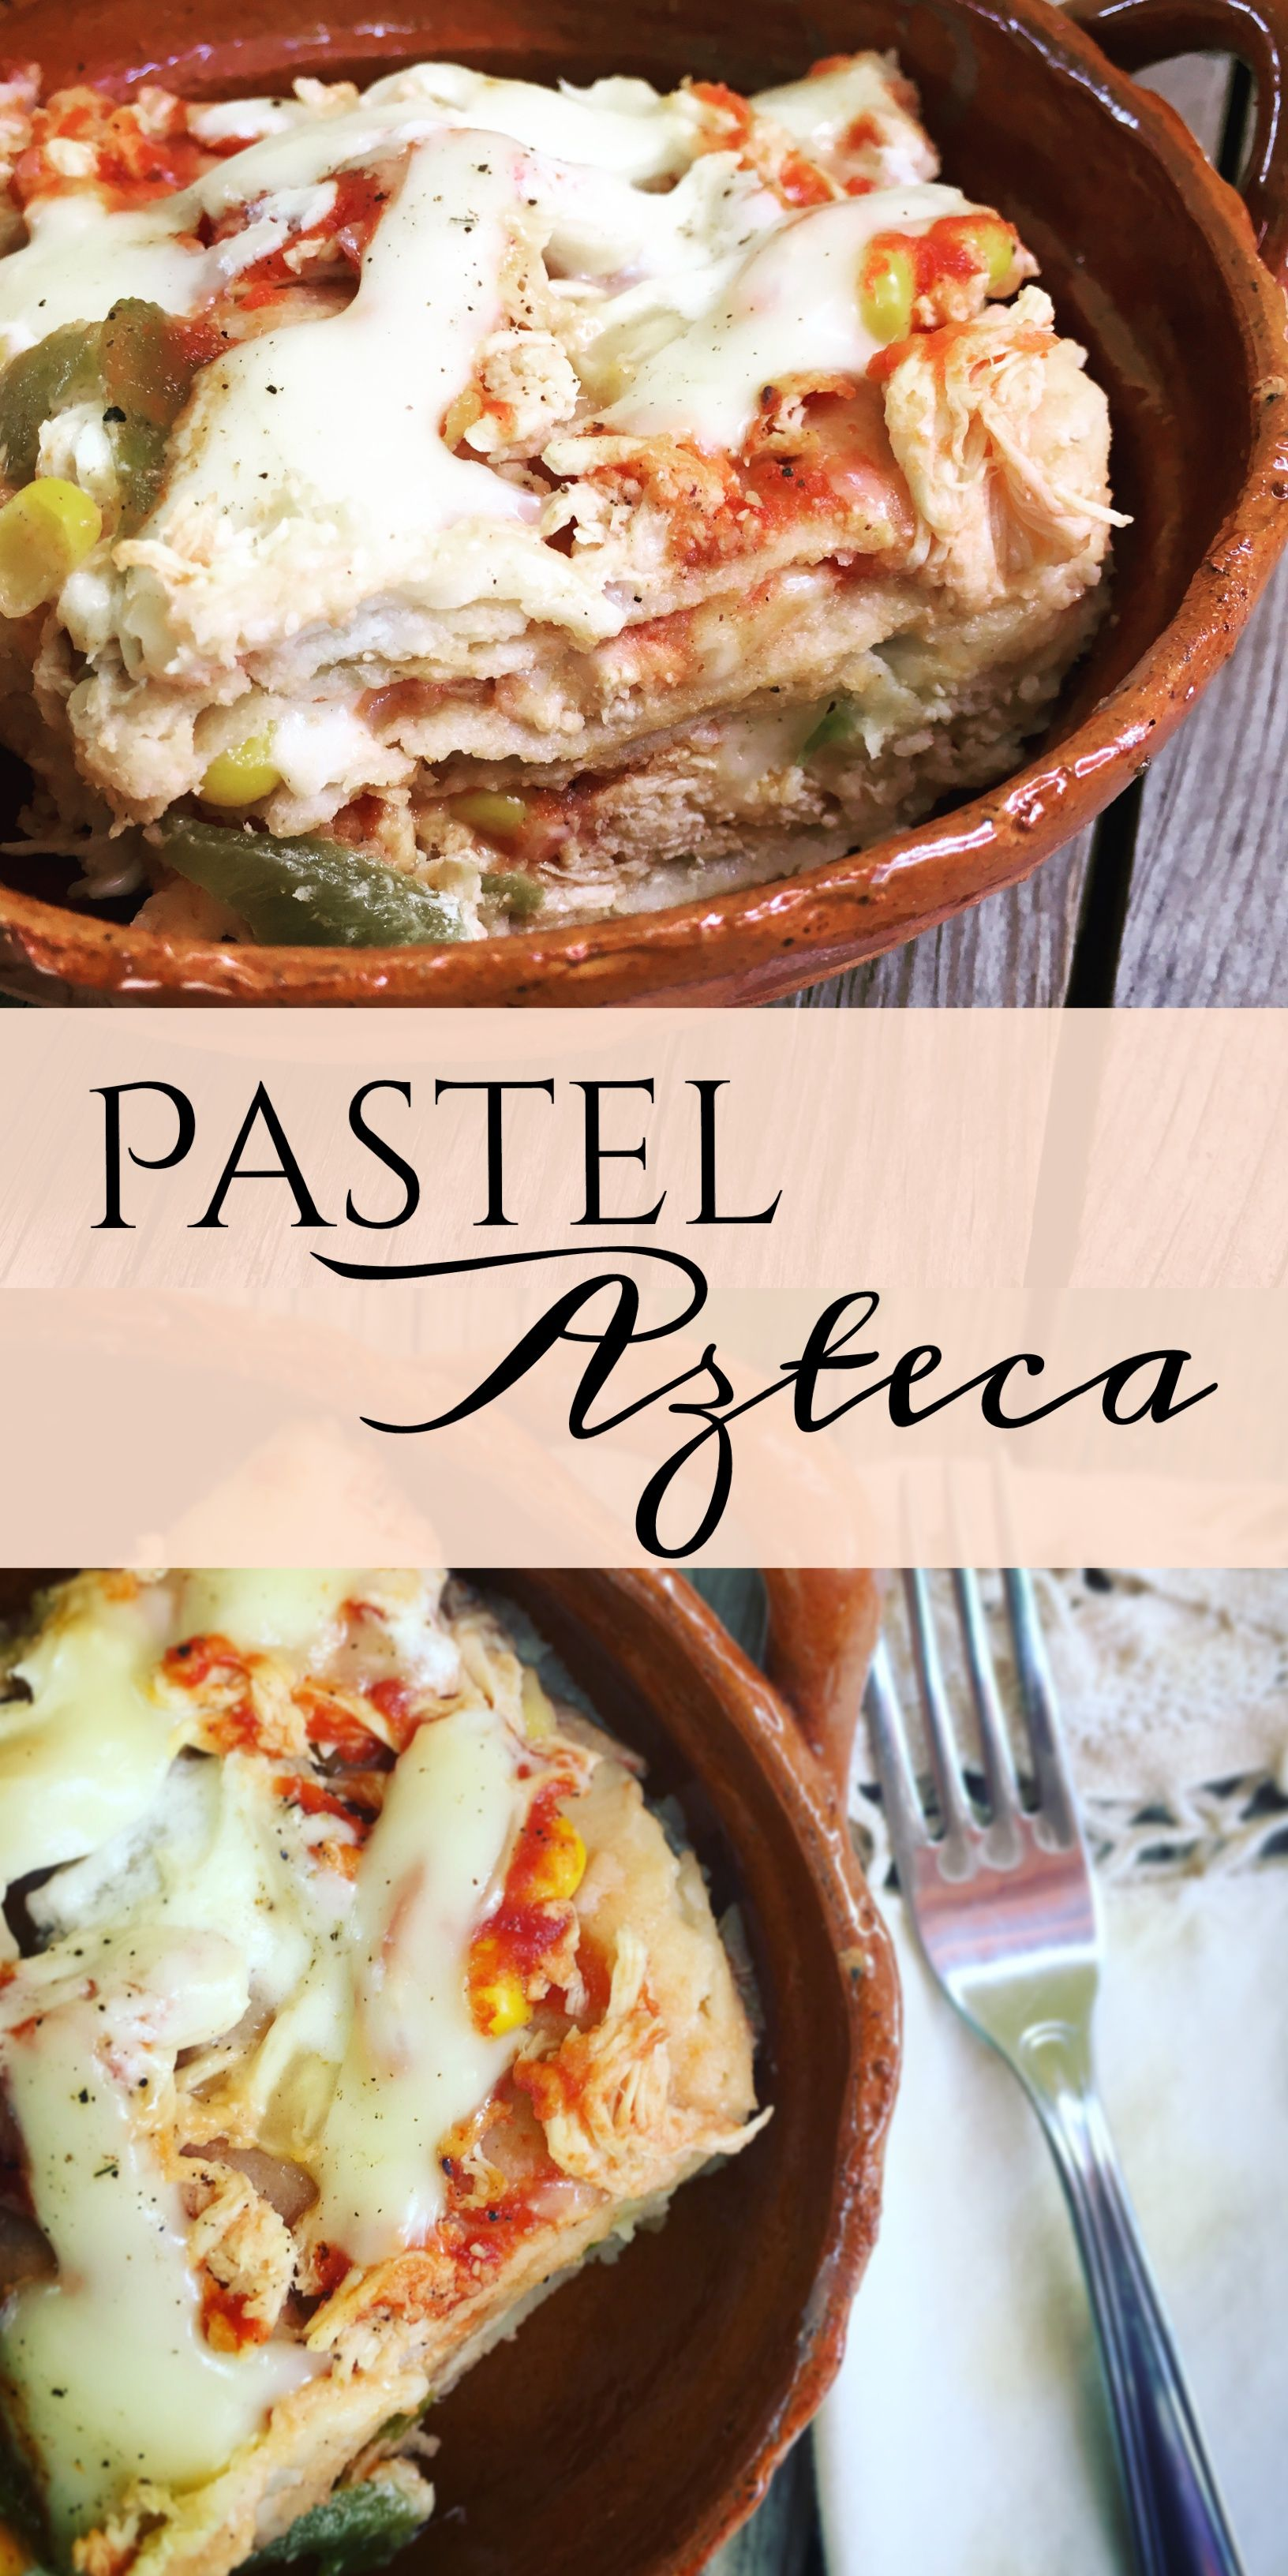 Pastel azteca sin horno food mexicans and international food food ideas forumfinder Image collections